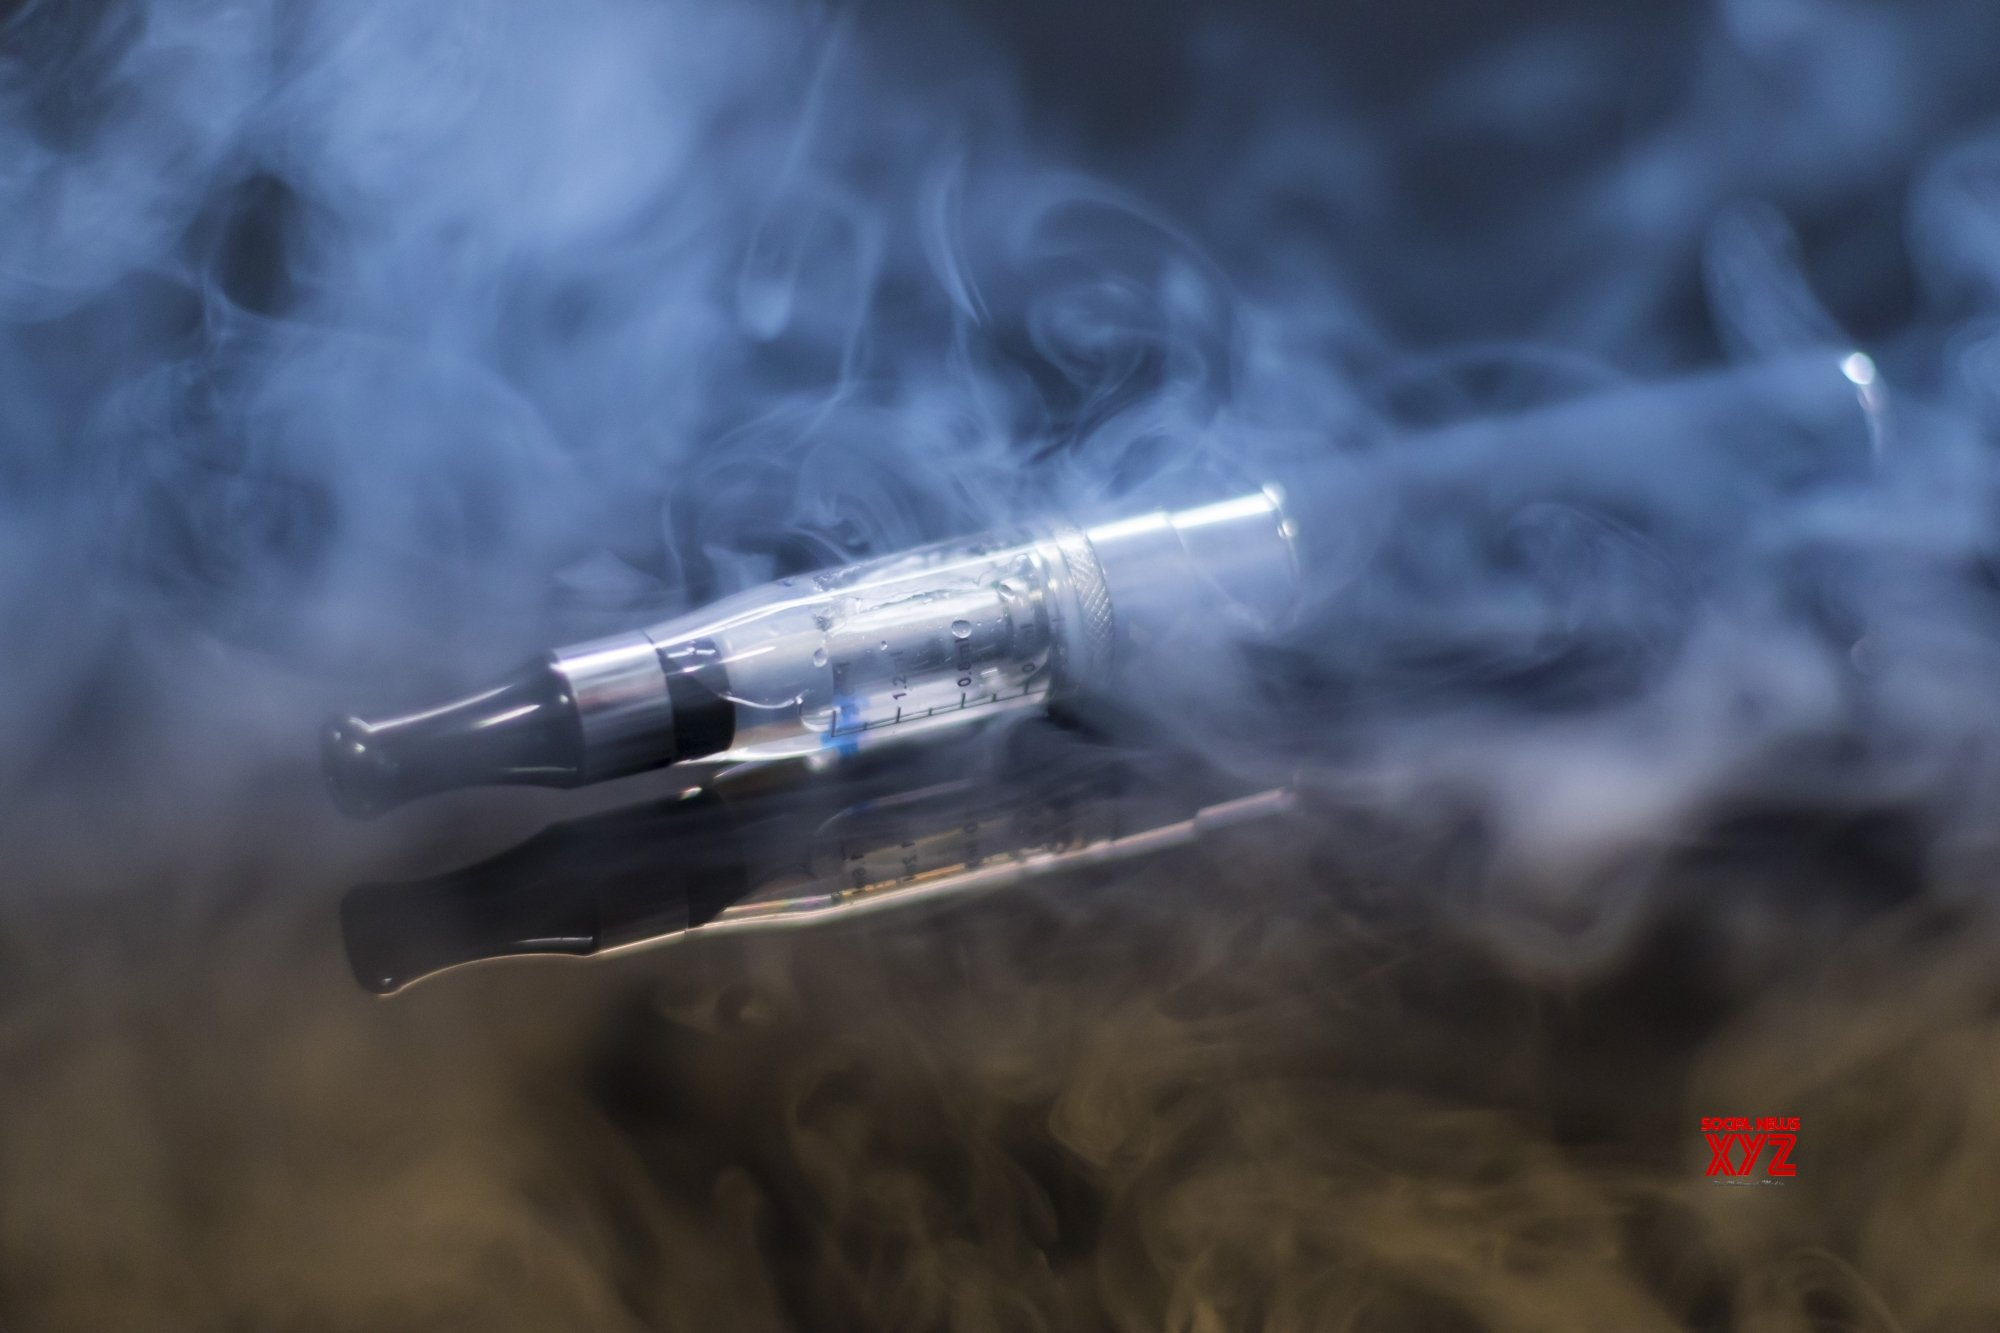 E-cigarettes have chemicals not disclosed by manufacturers